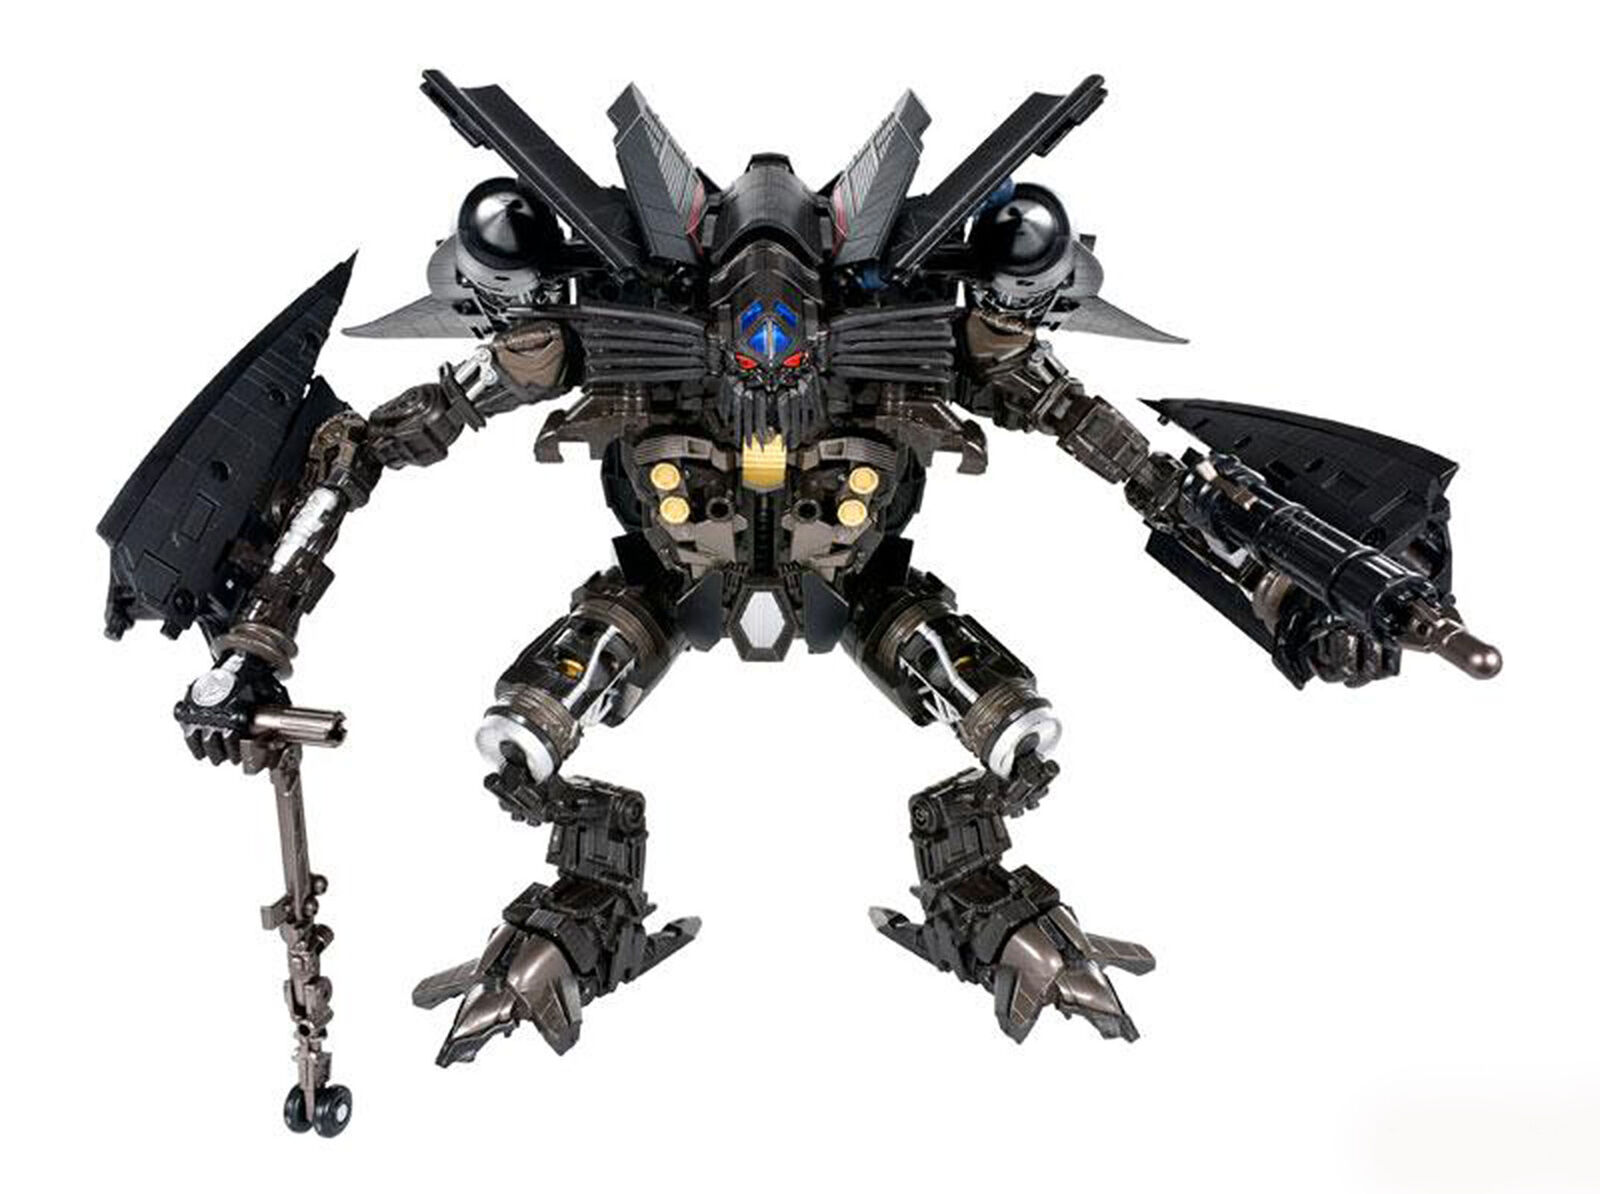 Transformers Movie MB-16 JETFIRE Toy Action Figure Christmas Gift Kids Robot Hot